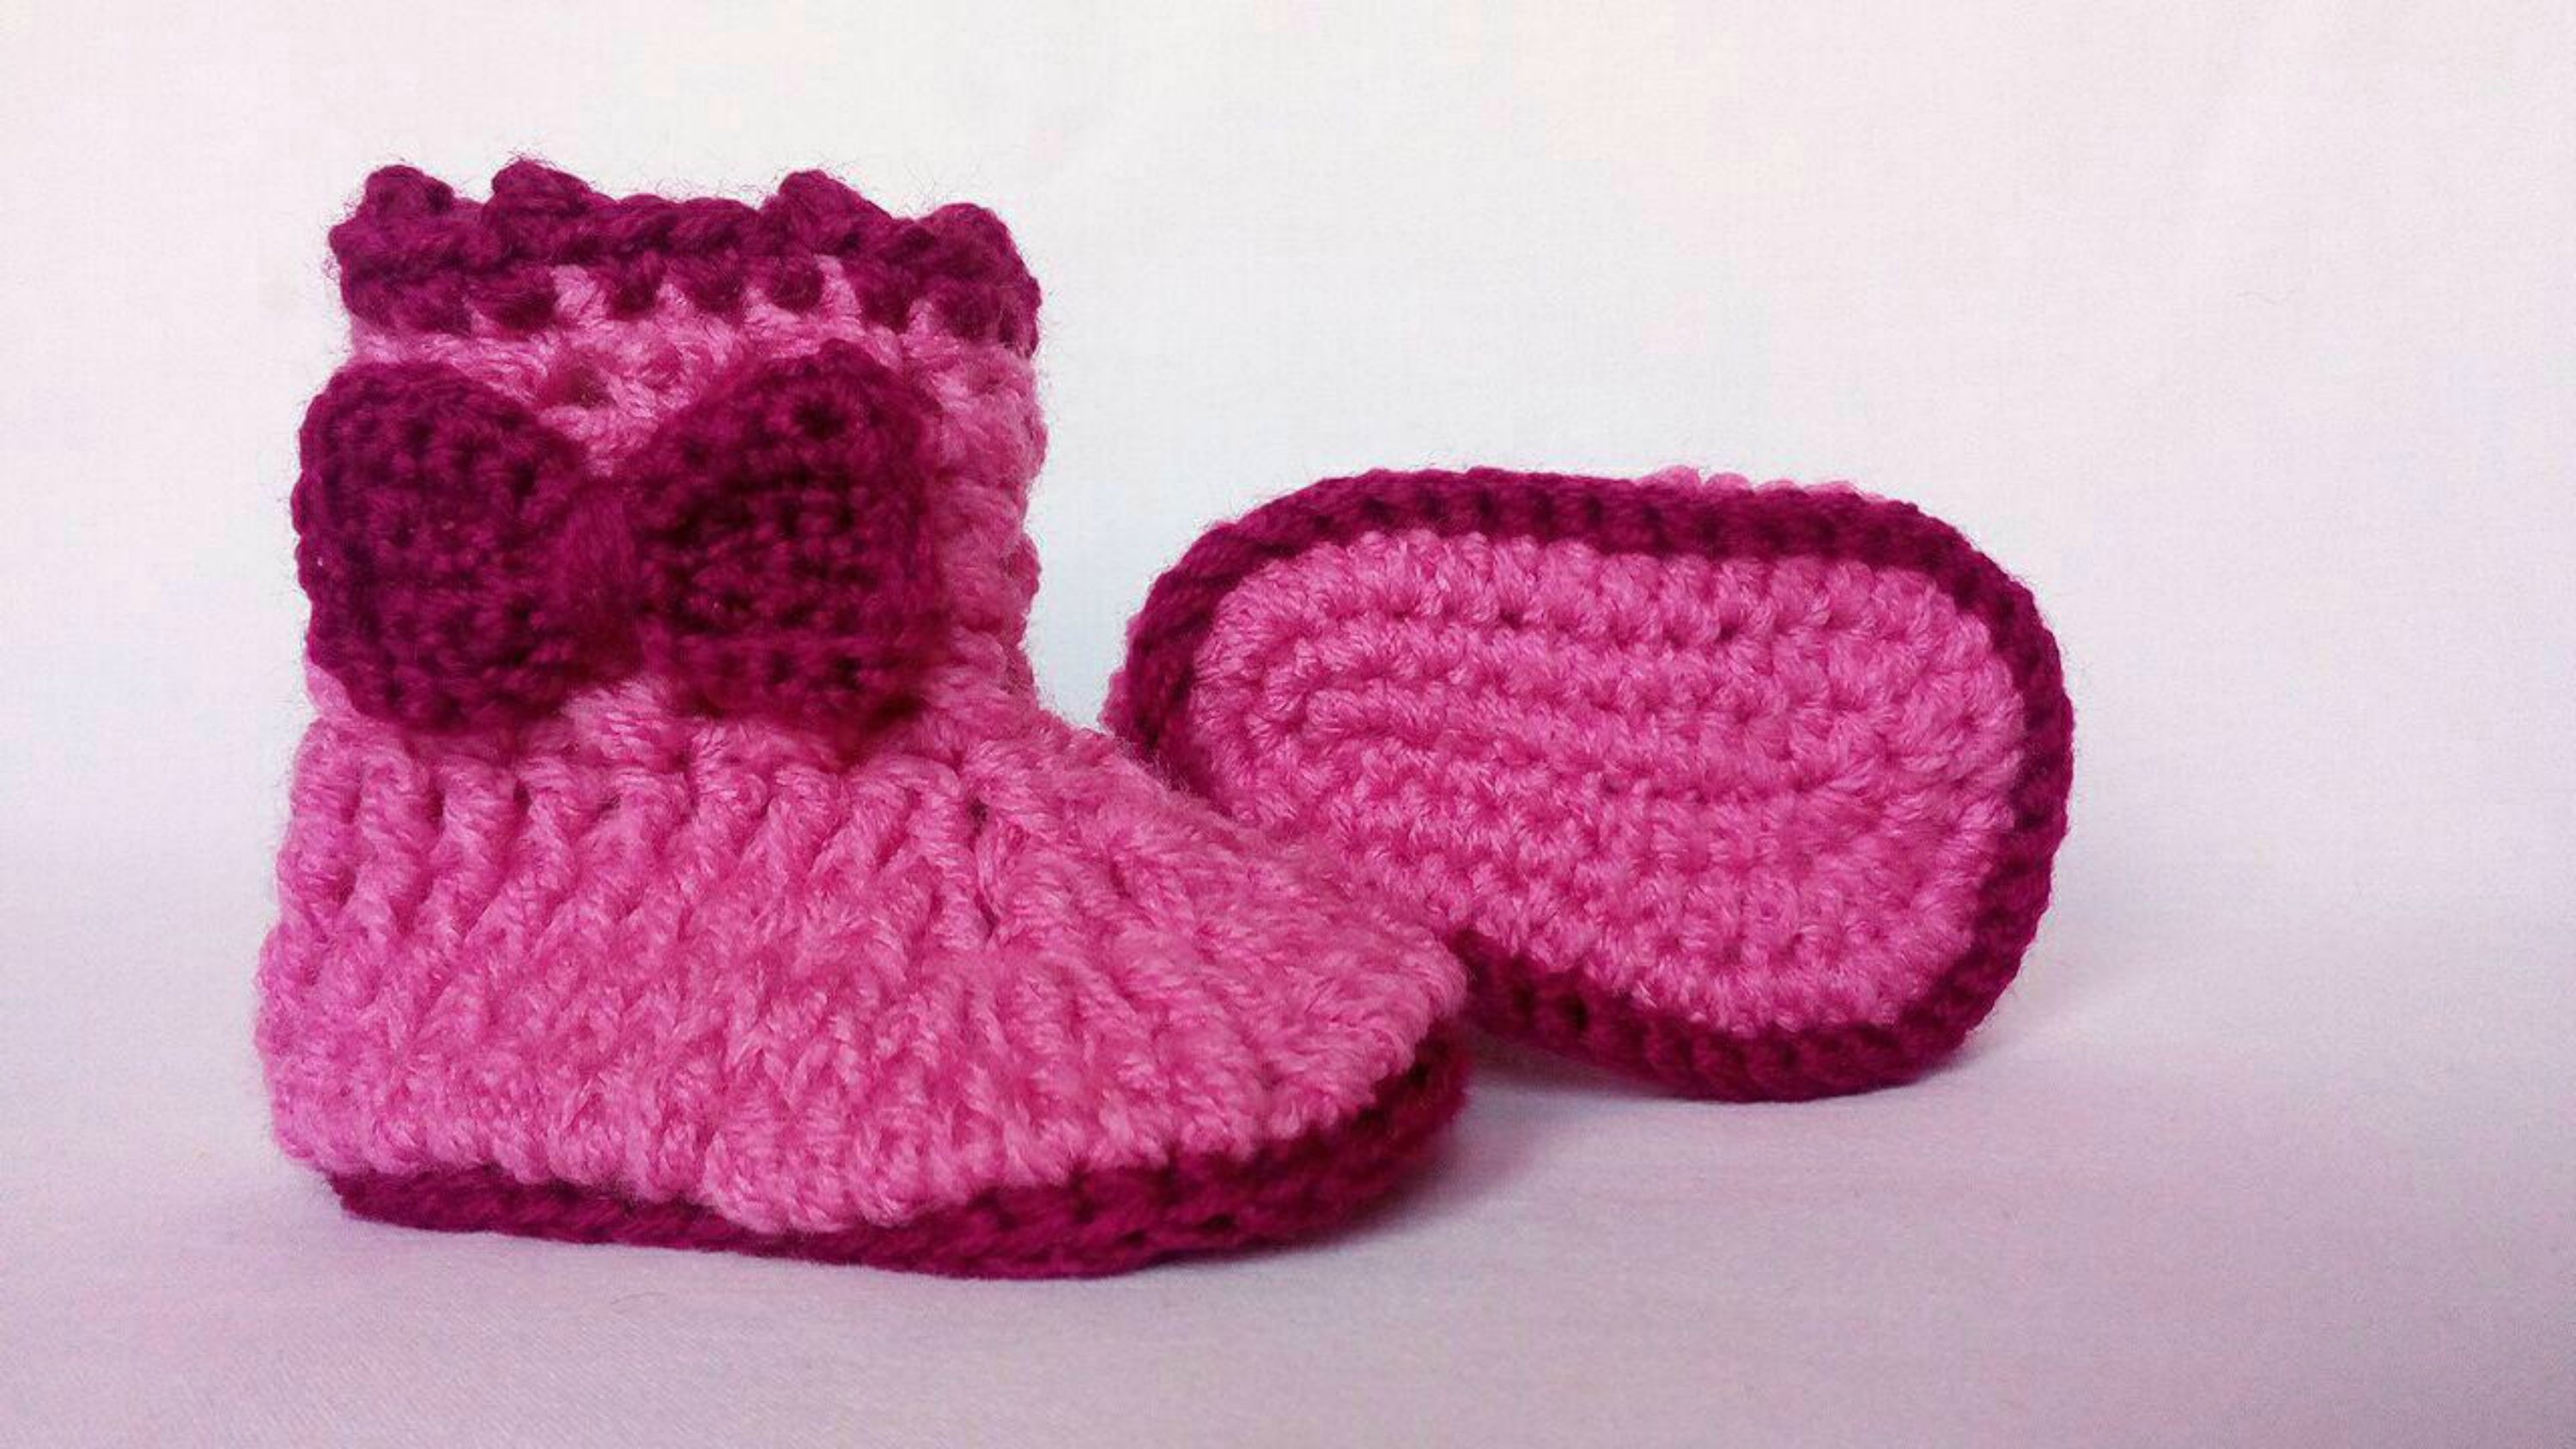 crochet baby shoes free pattern